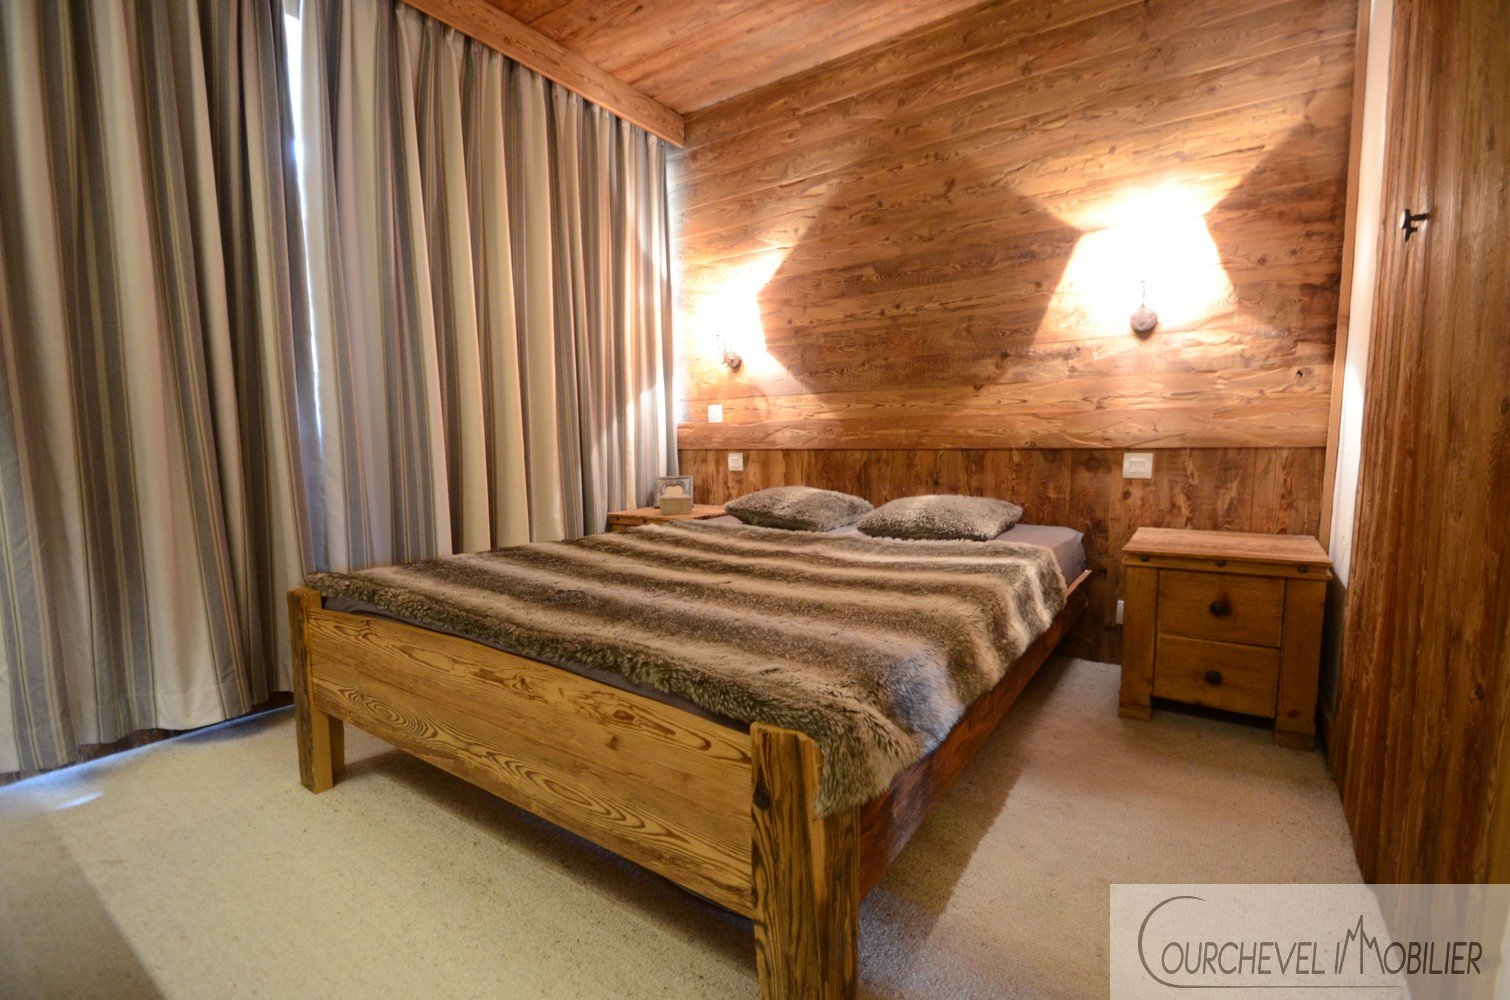 Verkoop Appartement - Courchevel Village 1550